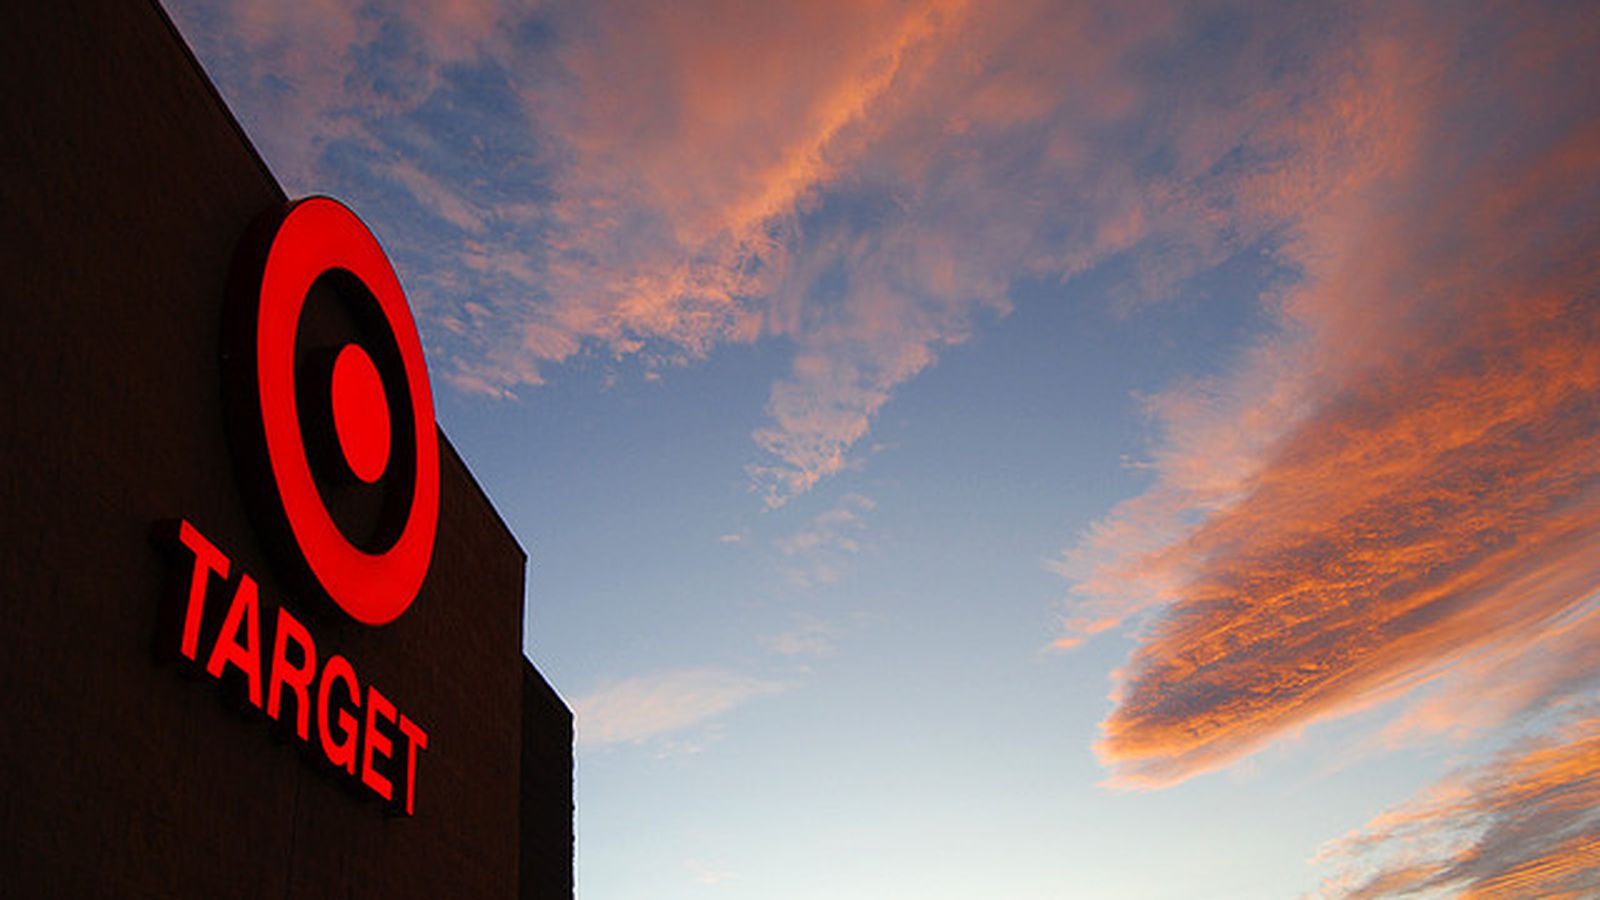 the massive data breach at target